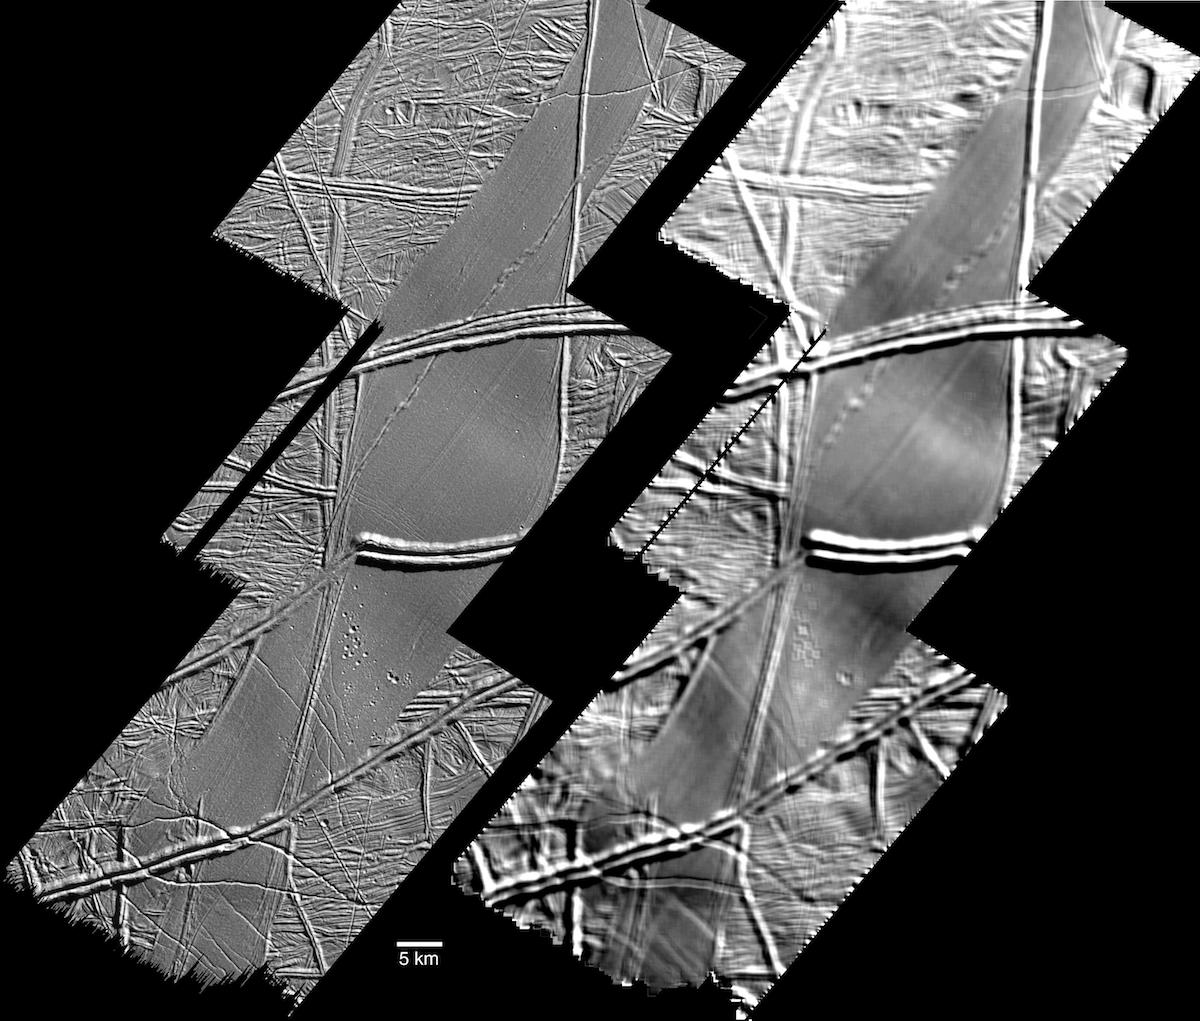 two black and white views of ridged surface under different lighting conditions